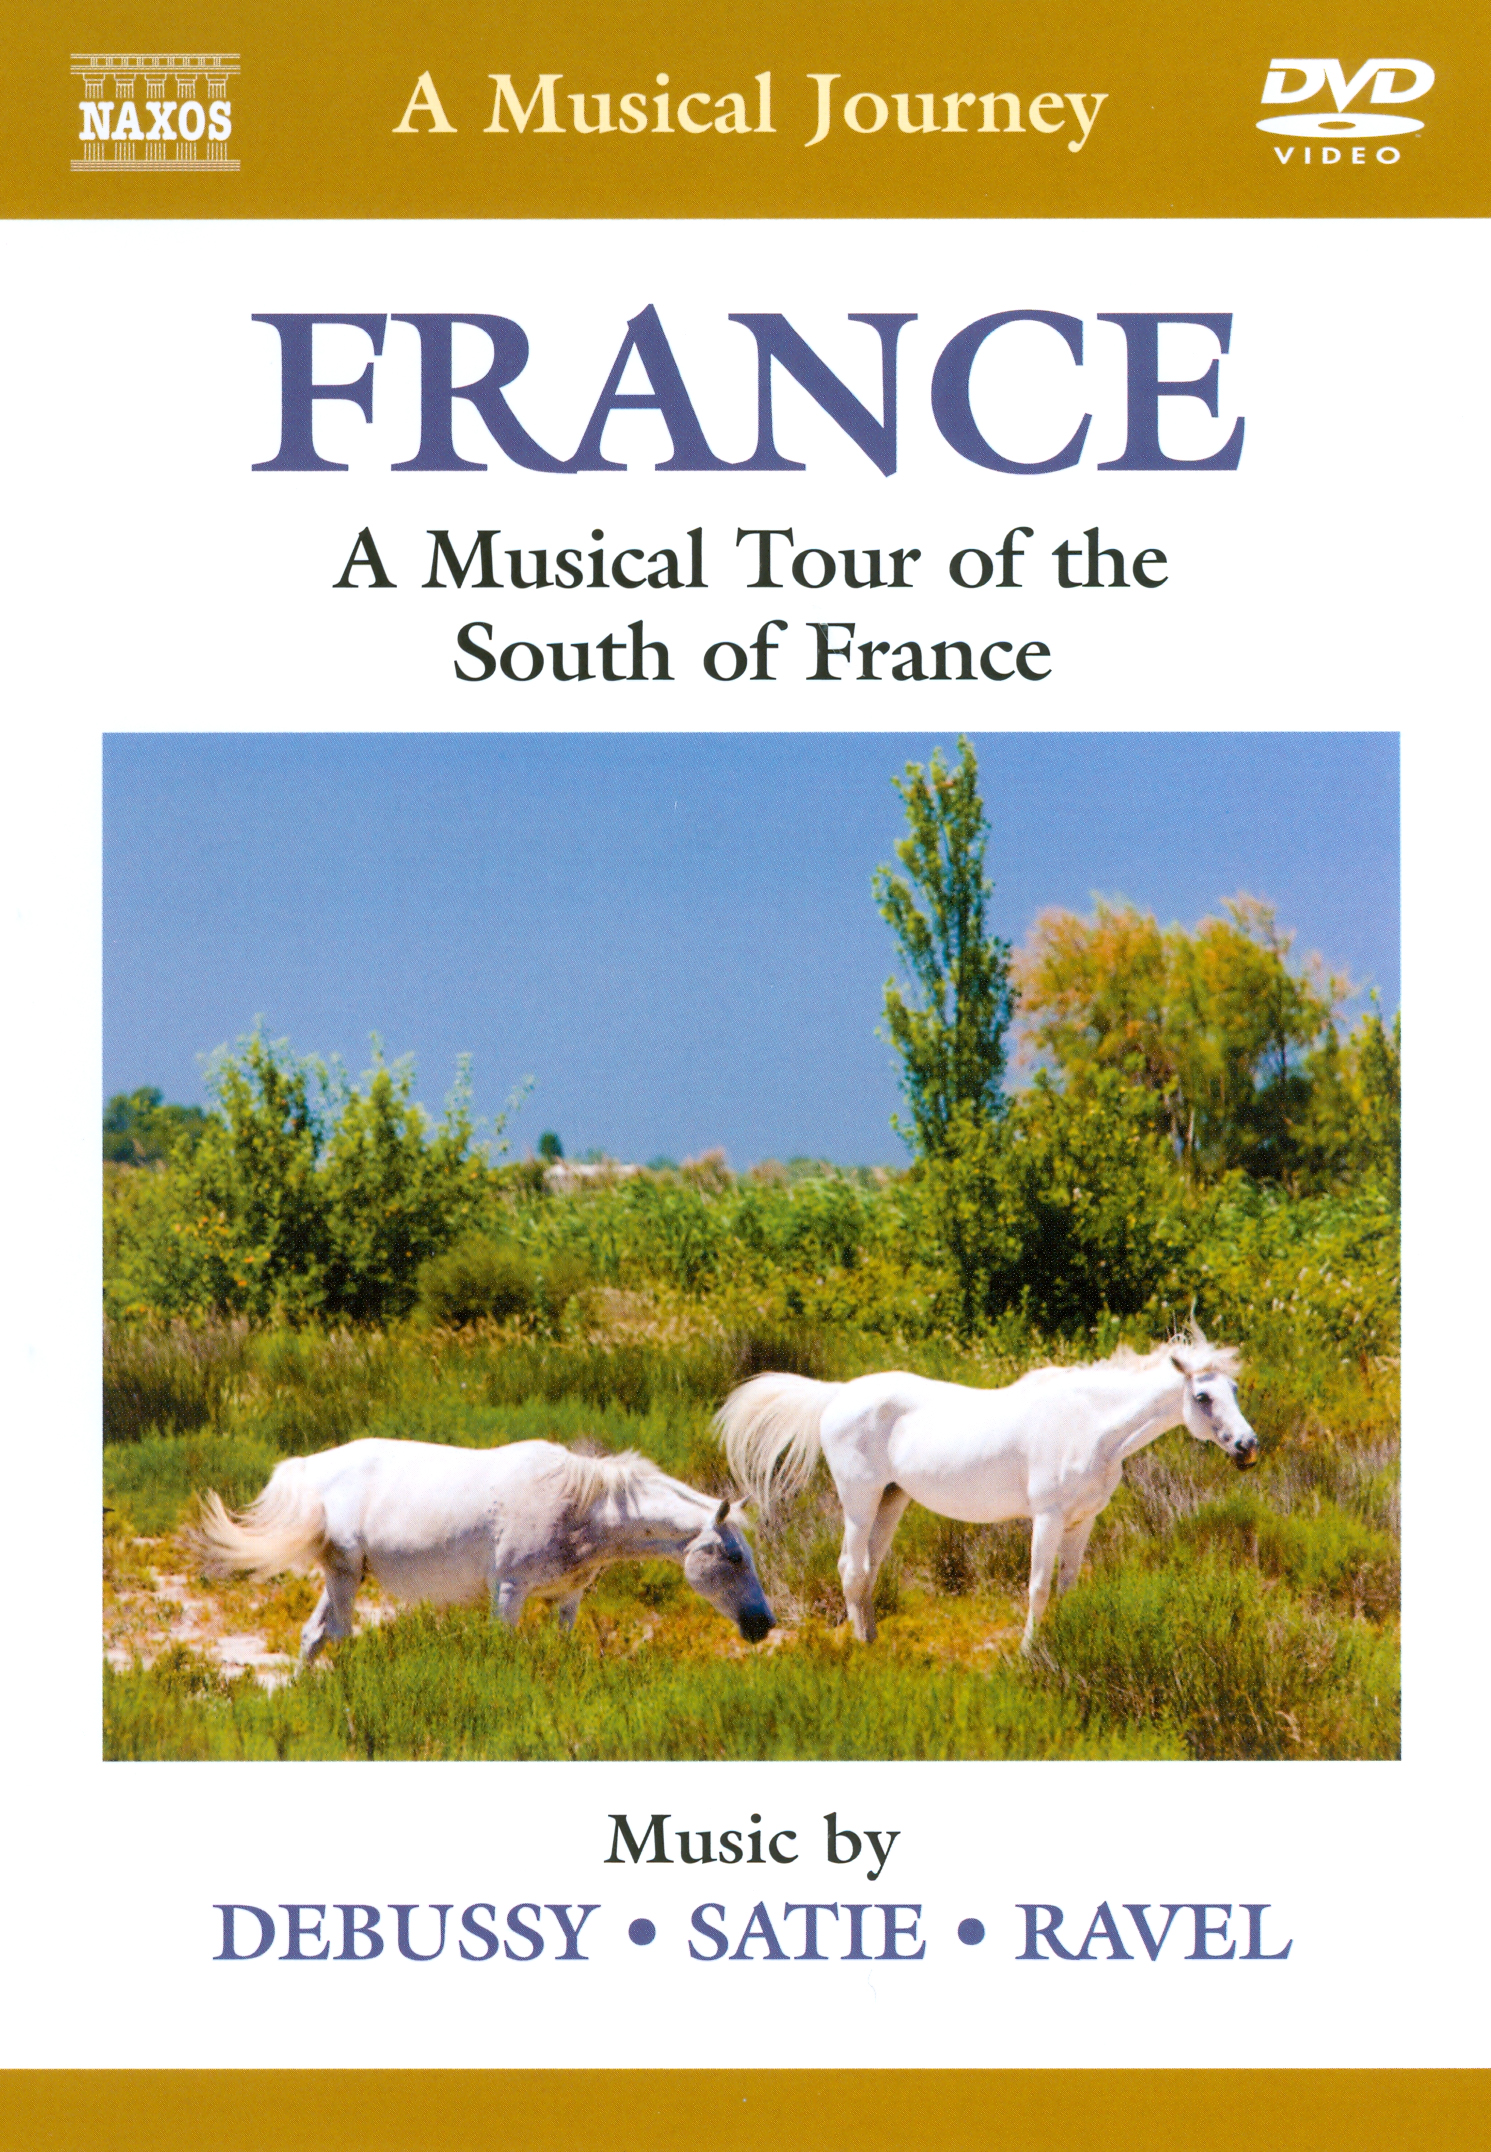 A Musical Journey: France - A Musical Tour of the South of France